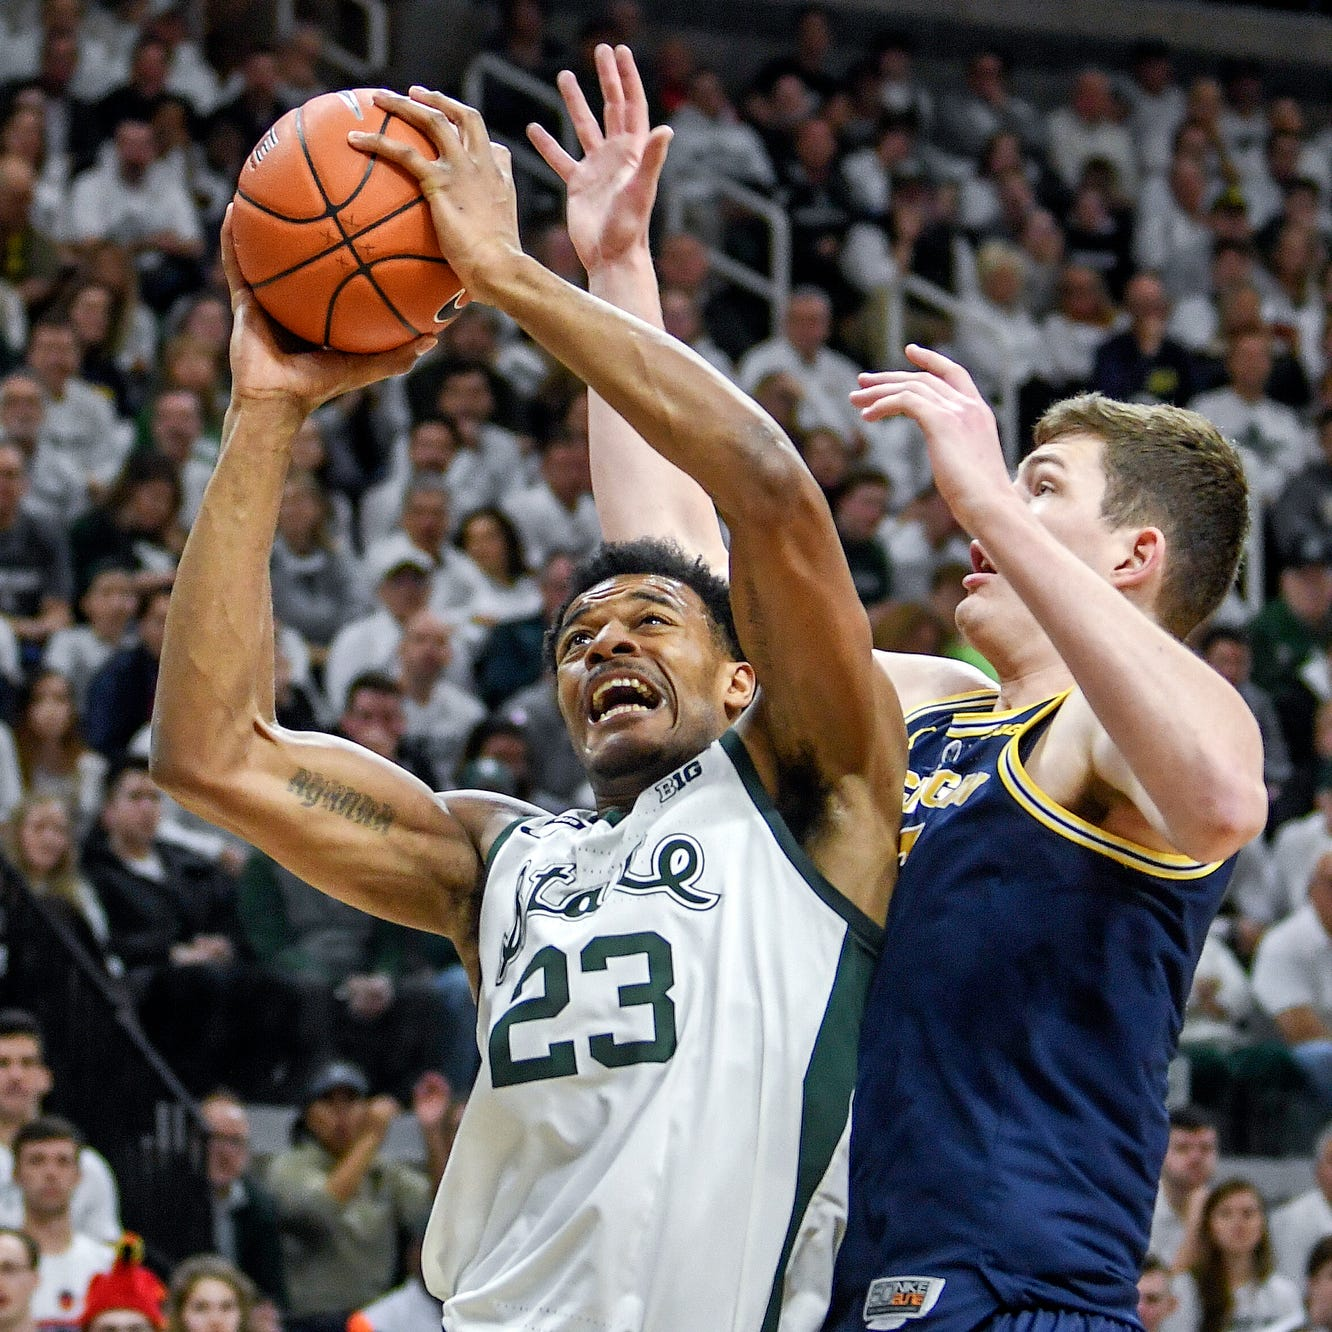 Michigan State vs. Michigan men's basketball video highlights, MSU seniors kiss the court